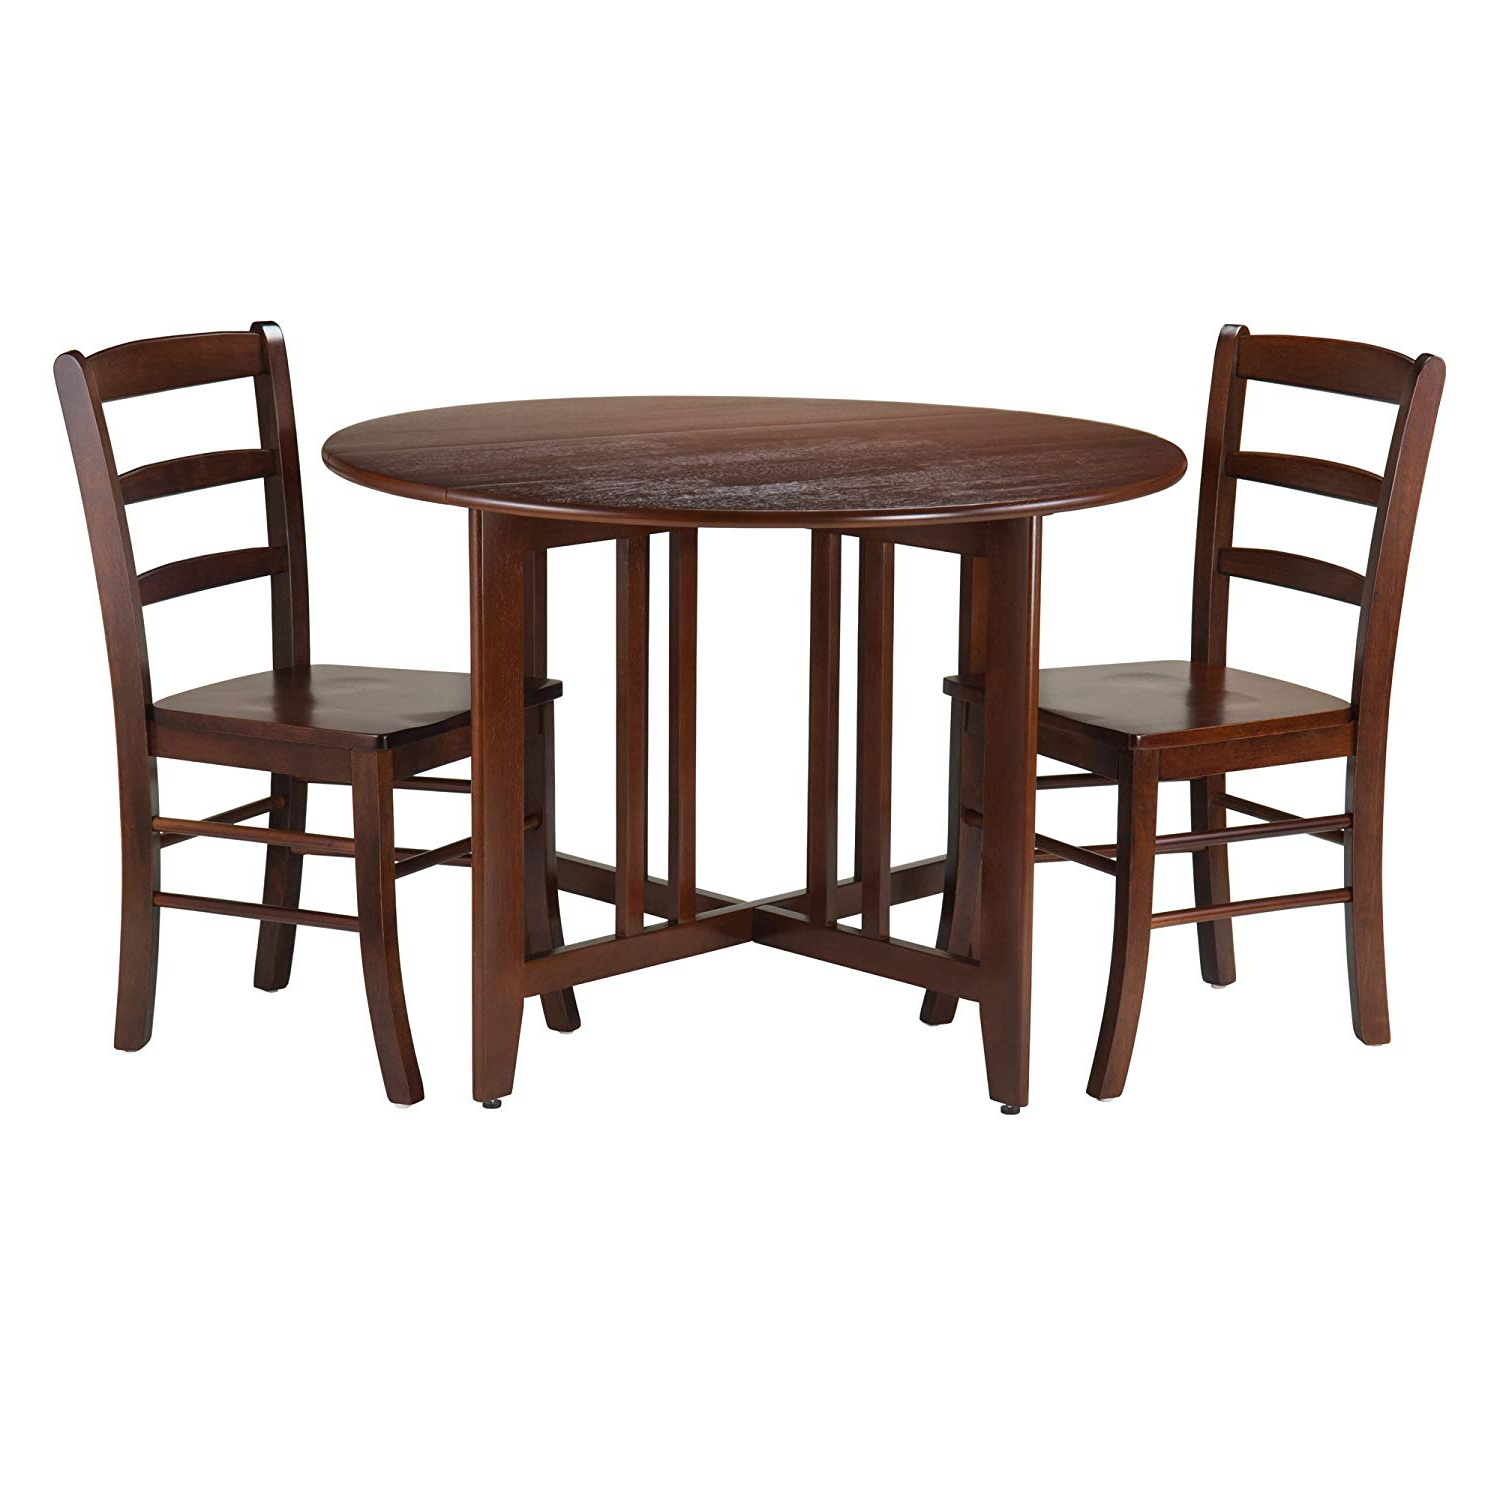 Most Current Winsome 3 Piece Alamo Round Drop Leaf Table With 2 Ladder Back Chairs, Brown In Transitional 3 Piece Drop Leaf Casual Dining Tables Set (View 12 of 25)